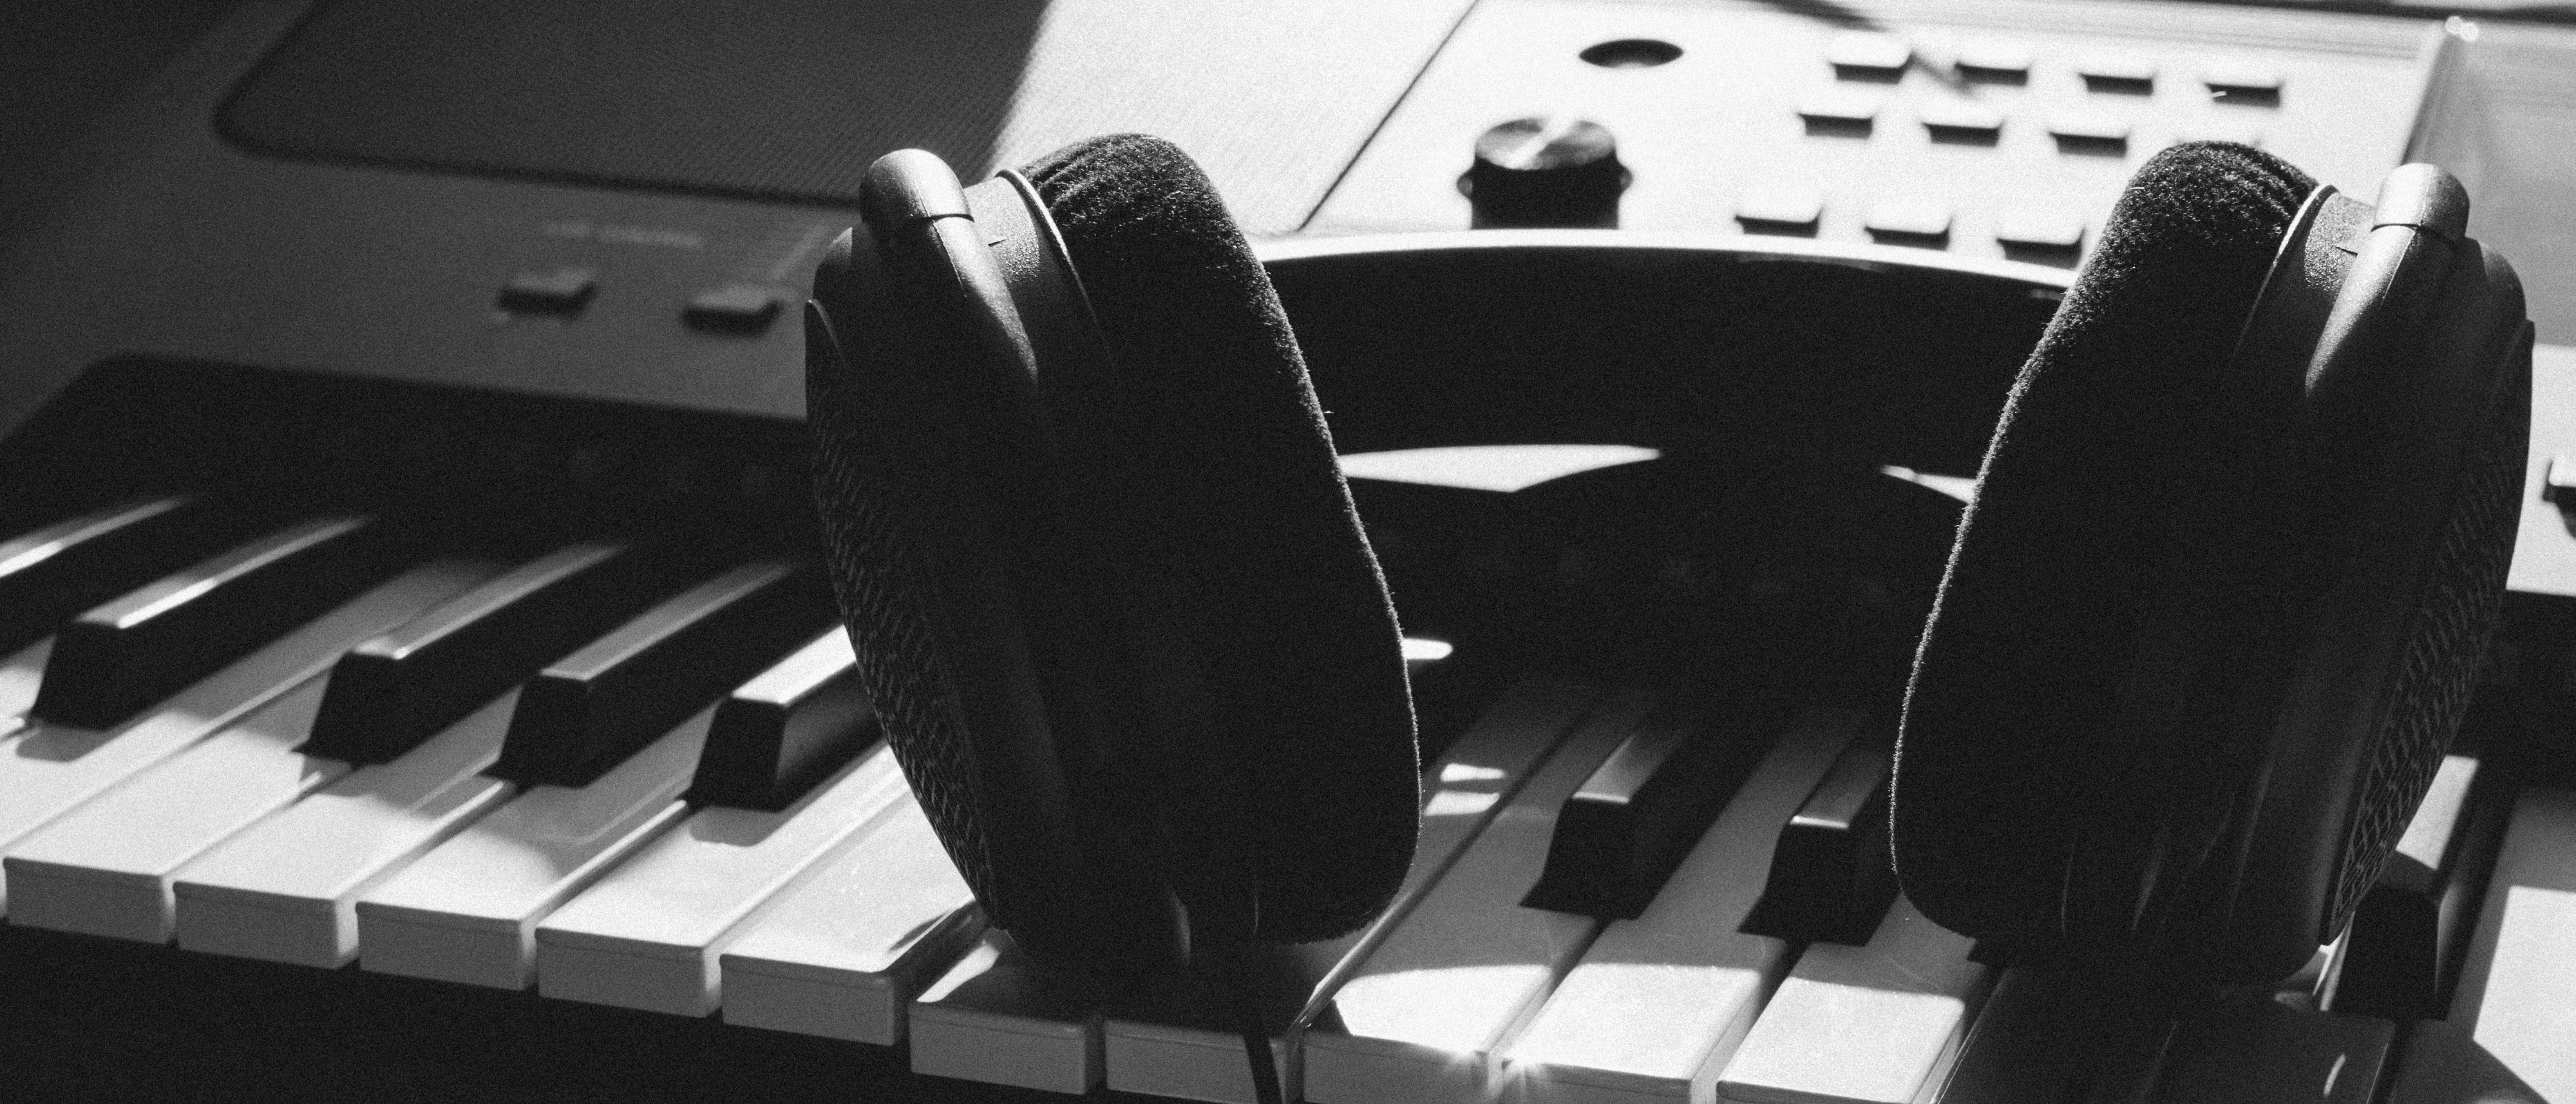 Neural Networks for Music Generation - Towards Data Science